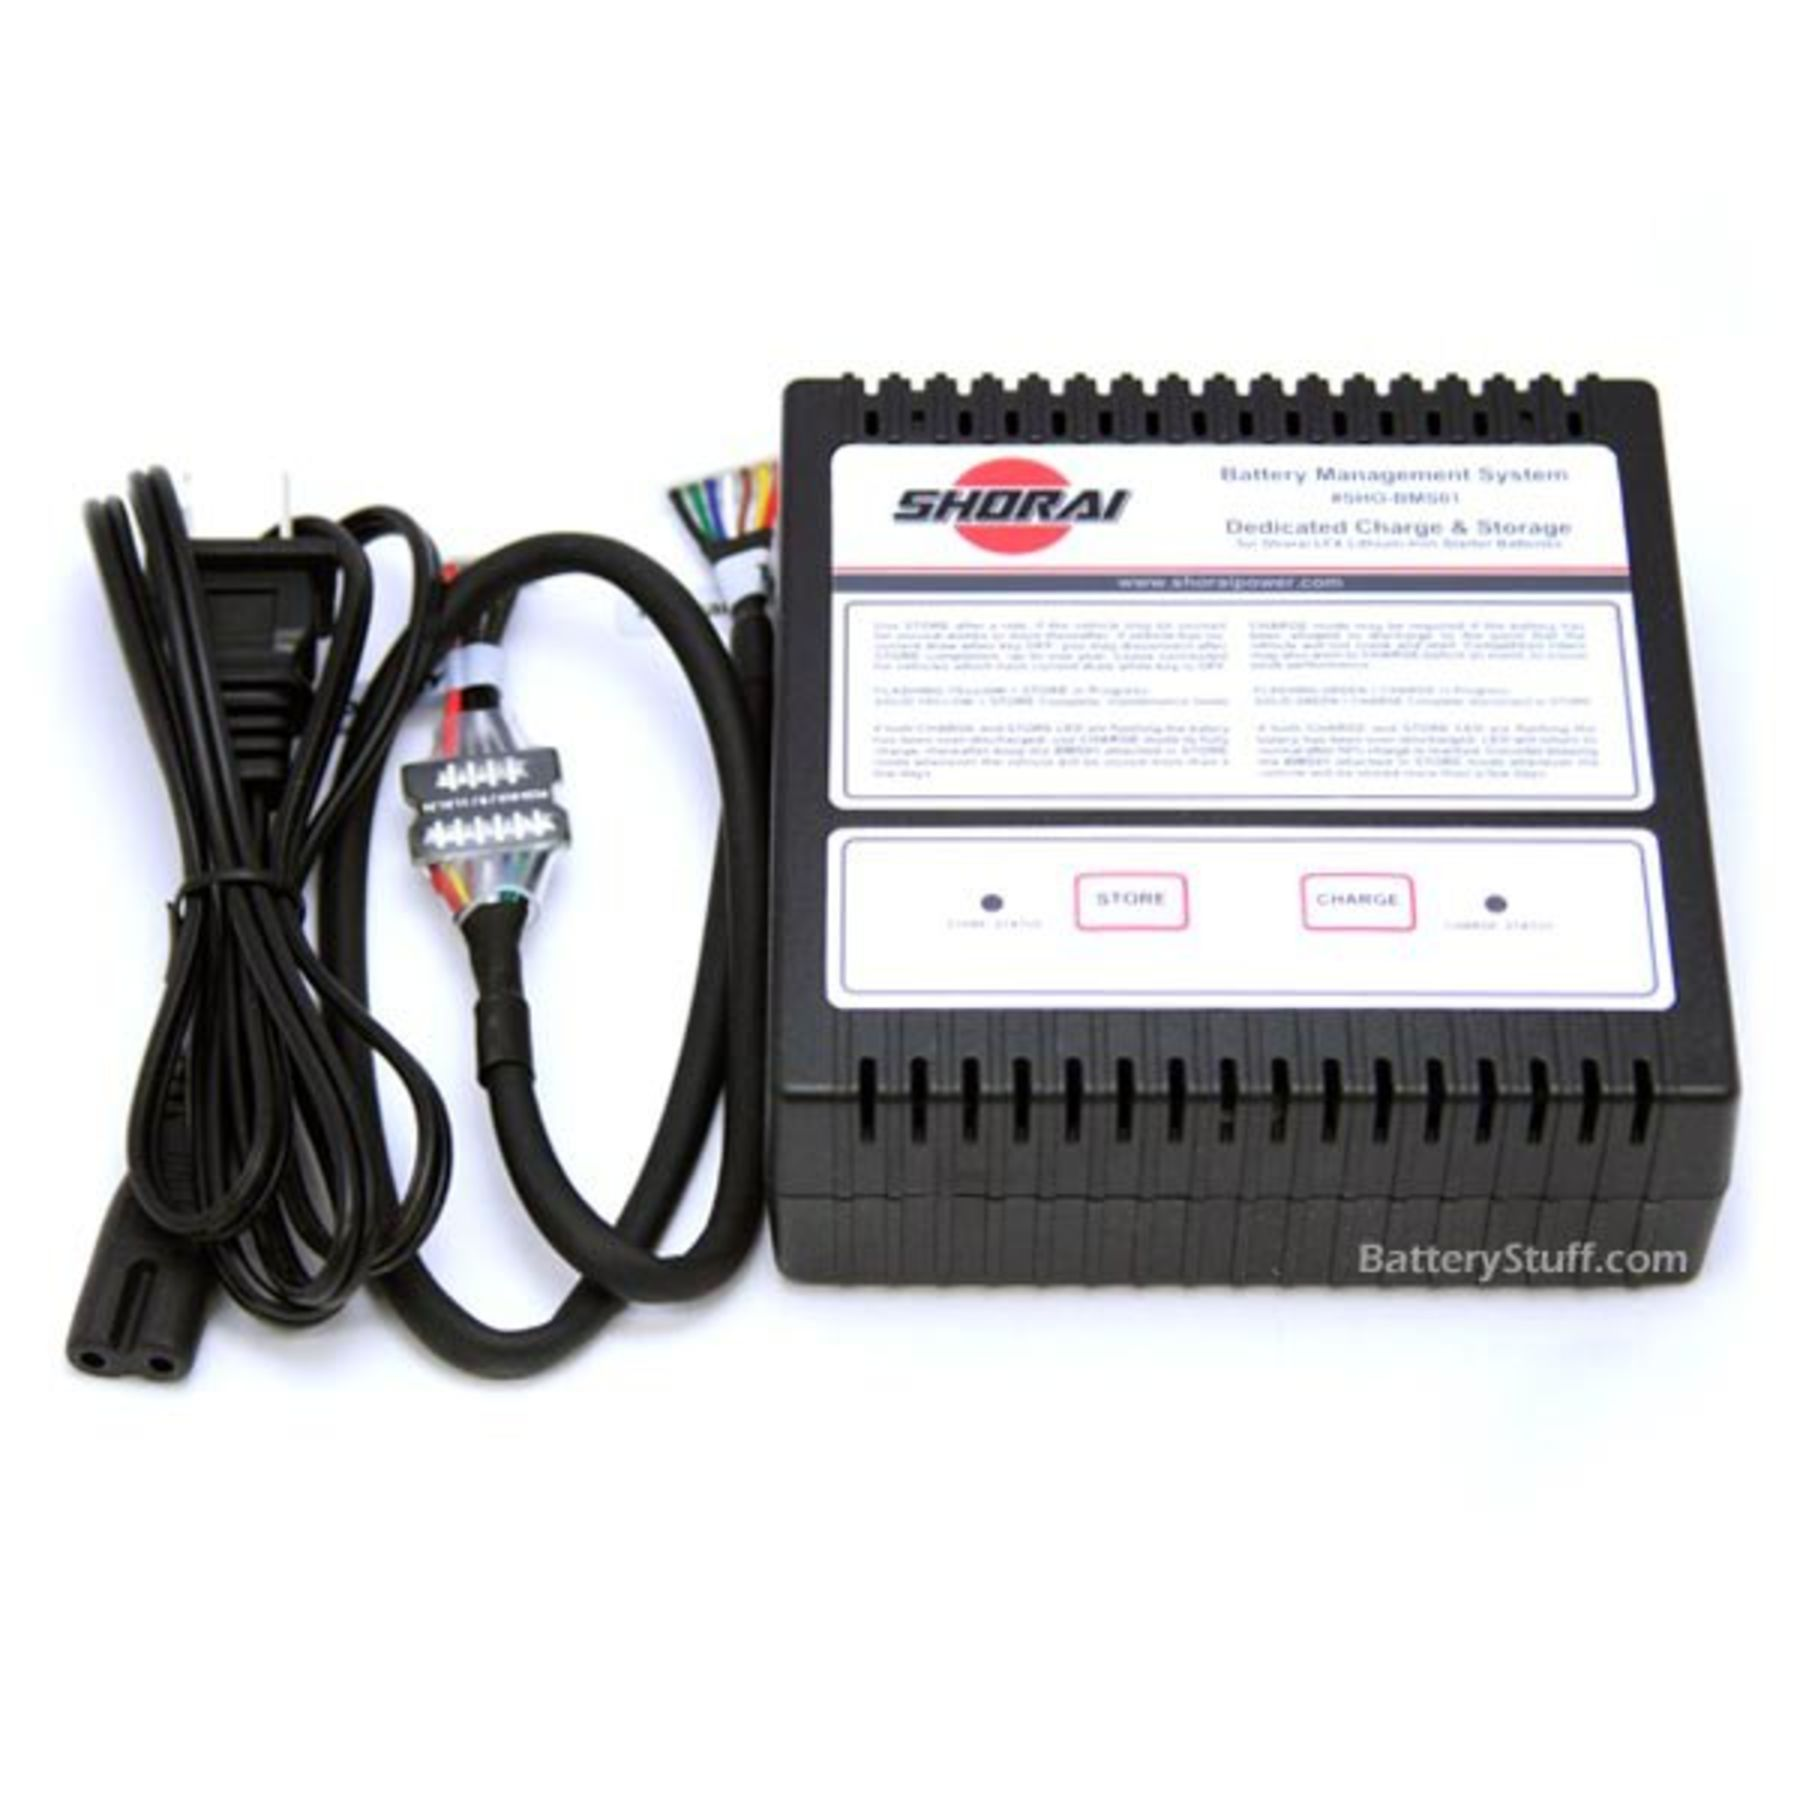 Shorai Lfx Bms01 Lithium Iron Charger Note Or You Can Use This Automatic Battery 6v12v With